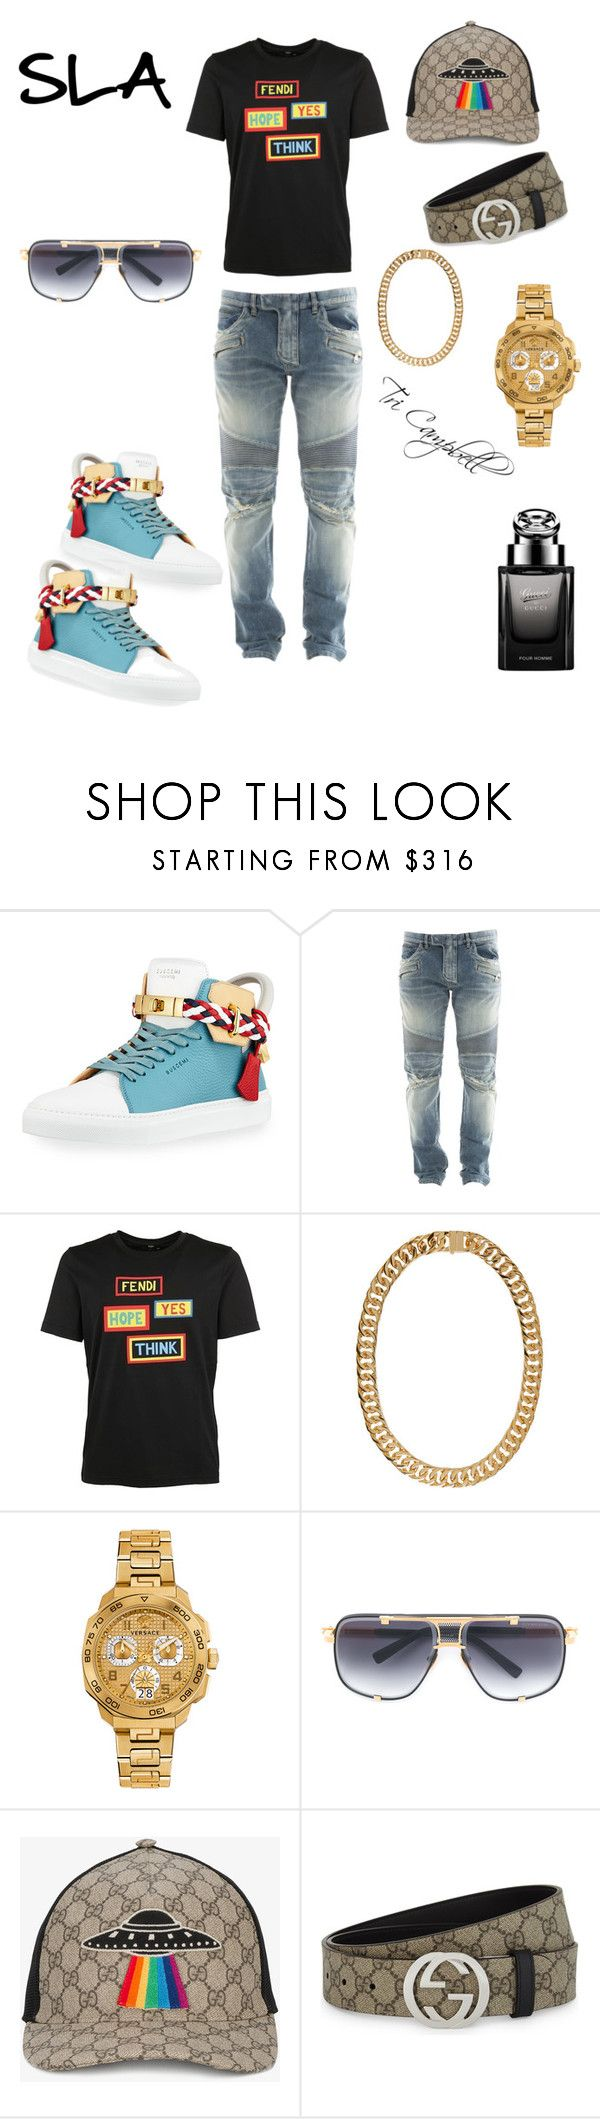 """I'm Gucci"" by tritheslaqueen on Polyvore featuring BUSCEMI, Balmain, Fendi, AMBUSH, Versace, Dita and Gucci"